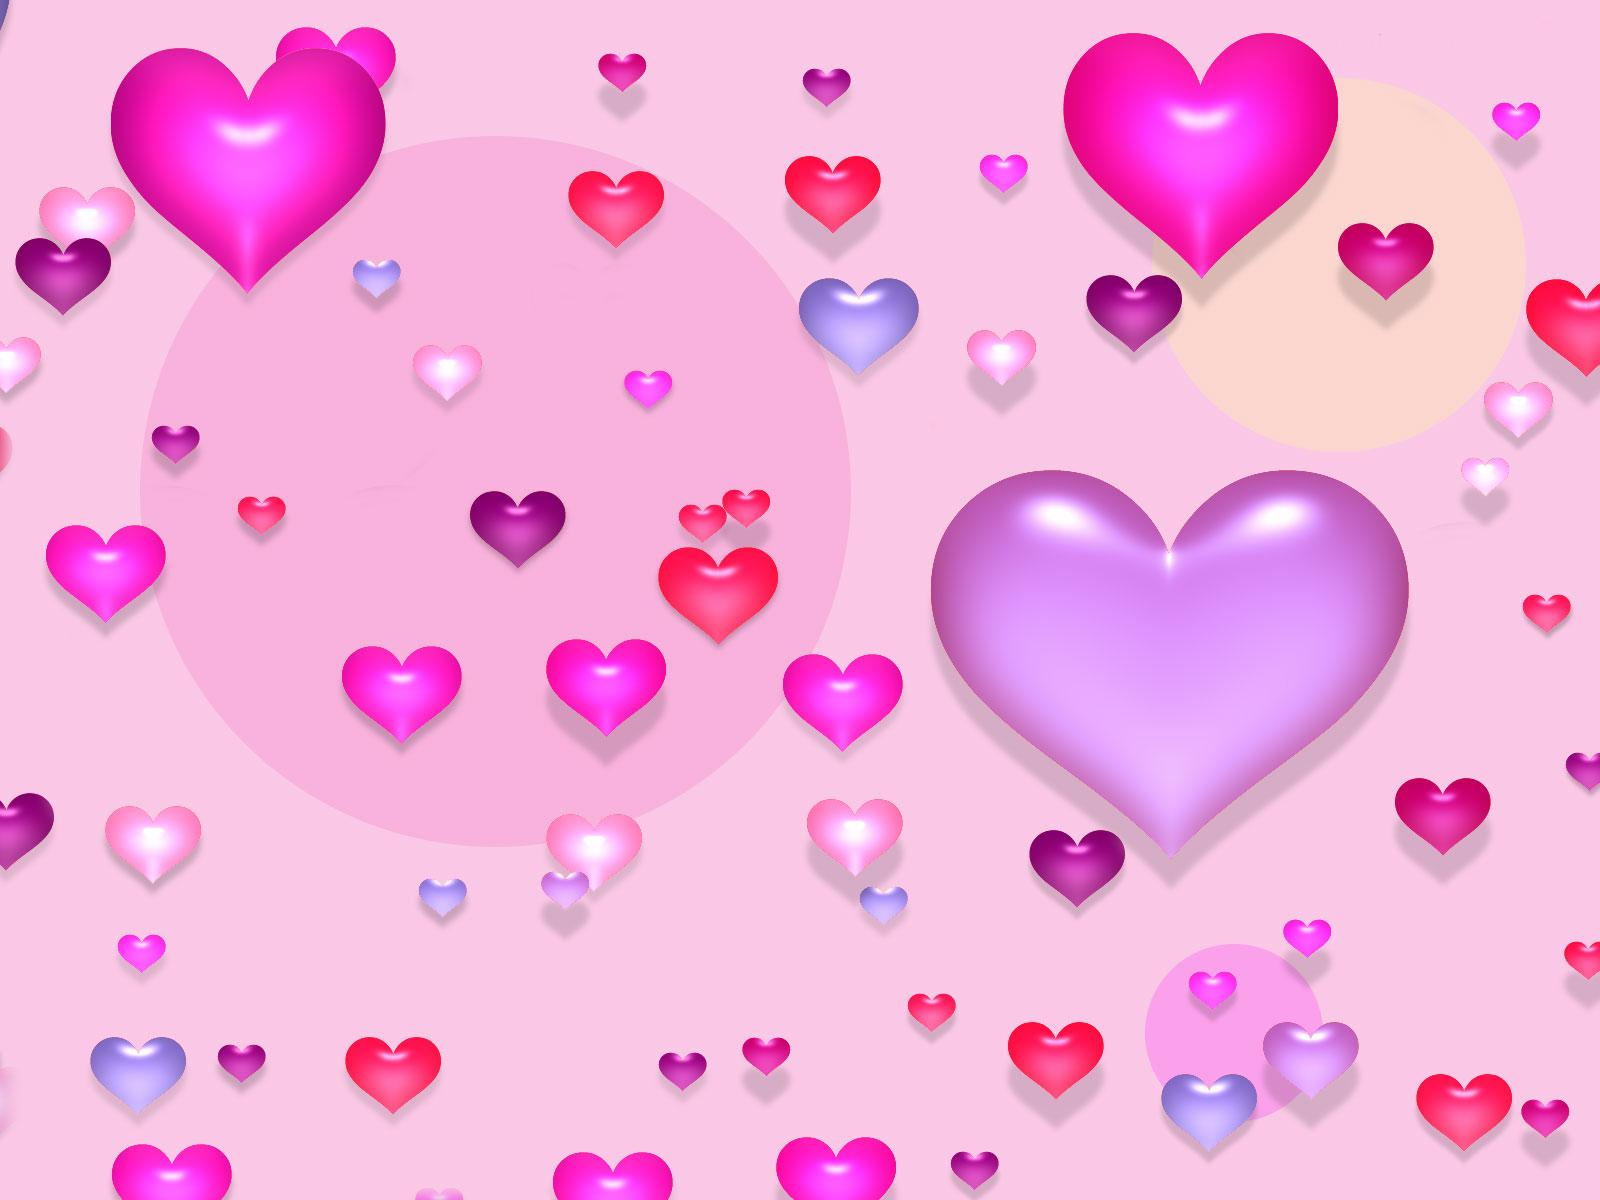 Love Wallpaper Pink